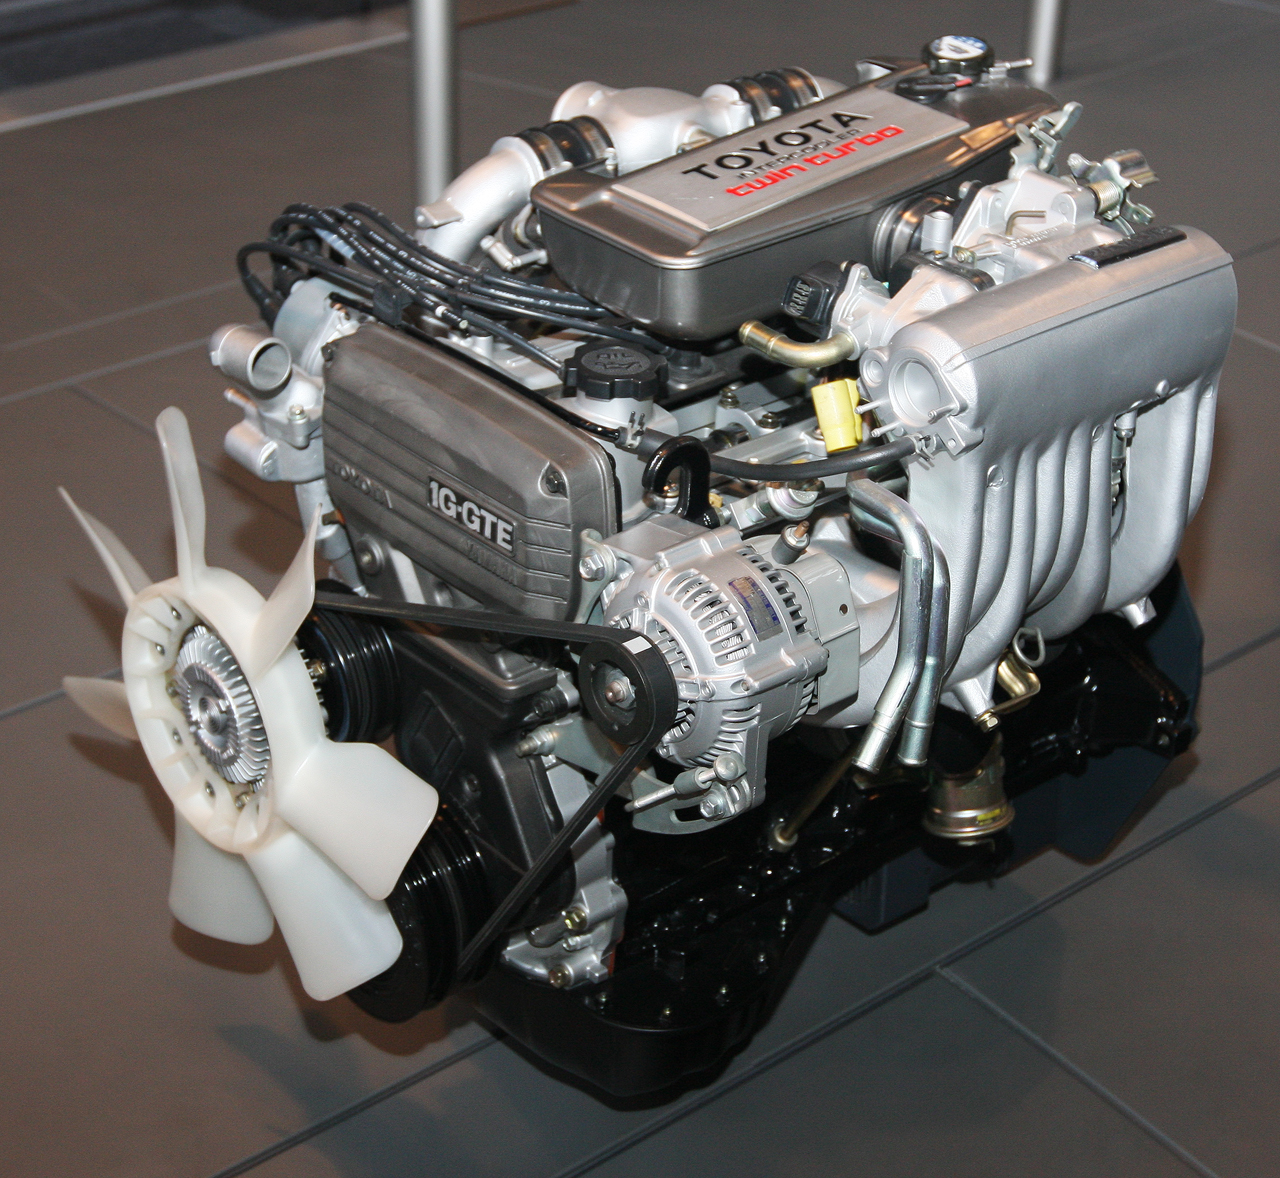 1G fe toyota engine